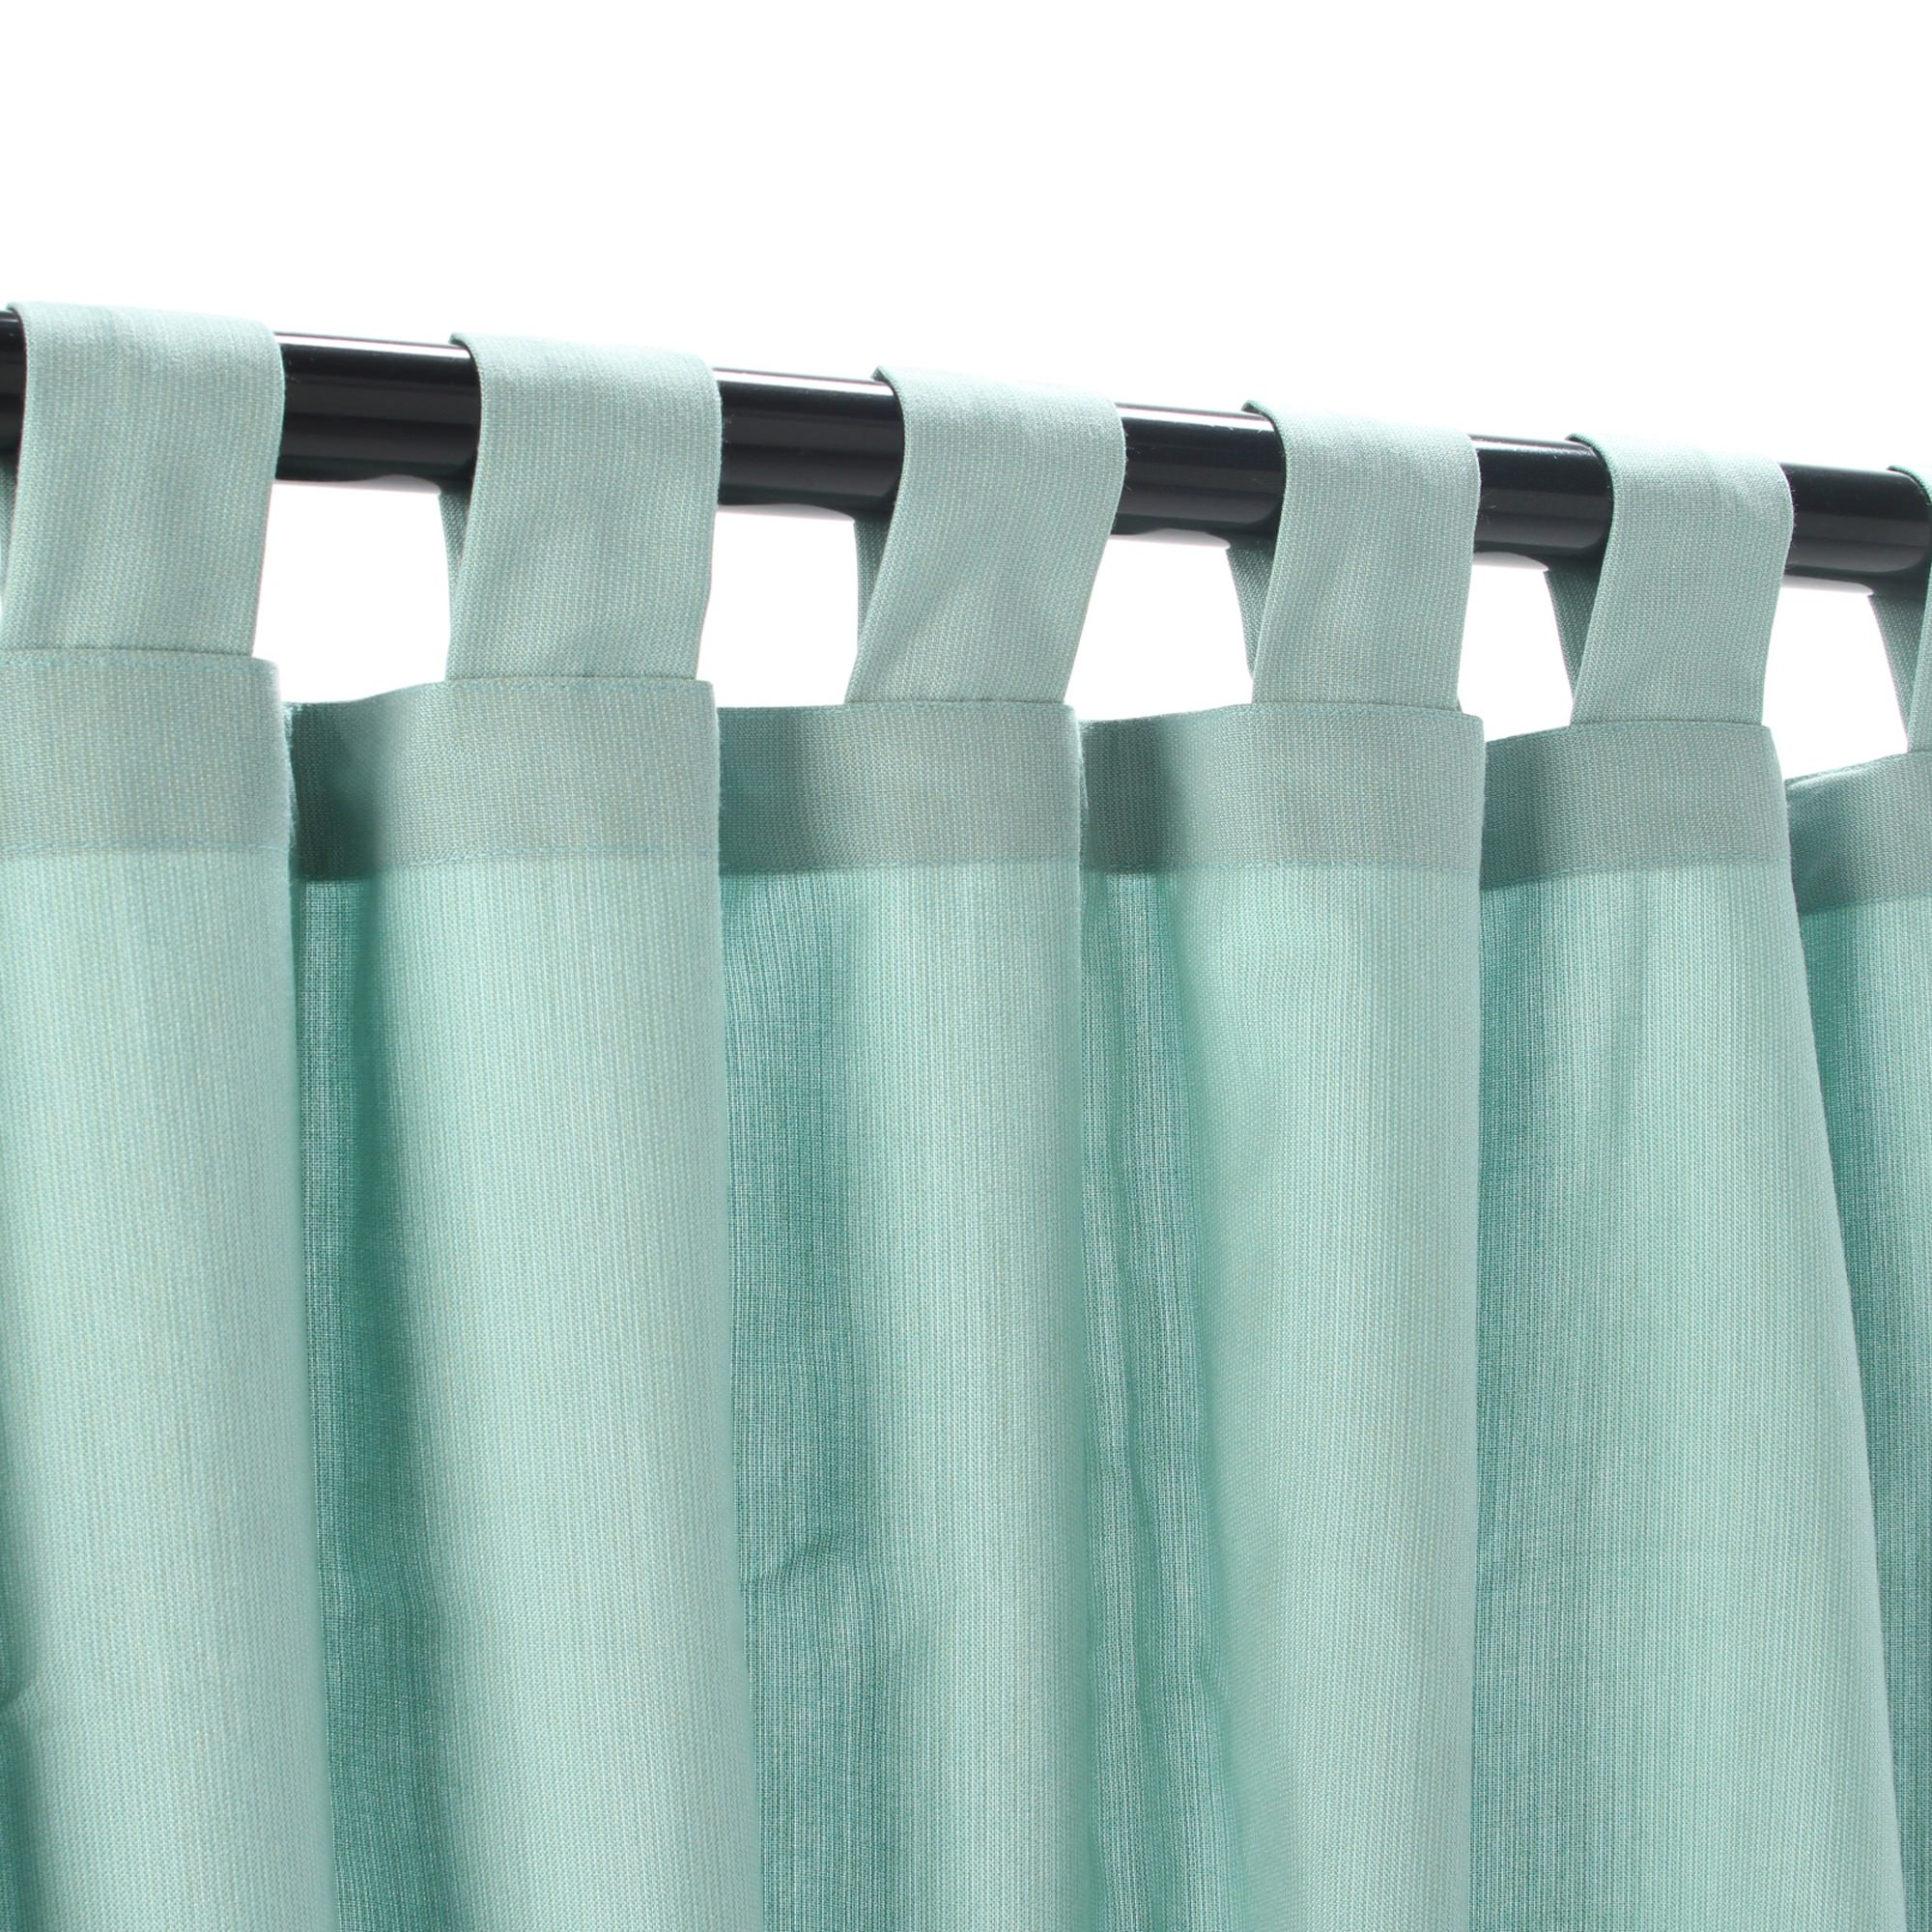 denim over orders curtain blackout window on overstock shipping panel drapes free product eclipse home kendall garden